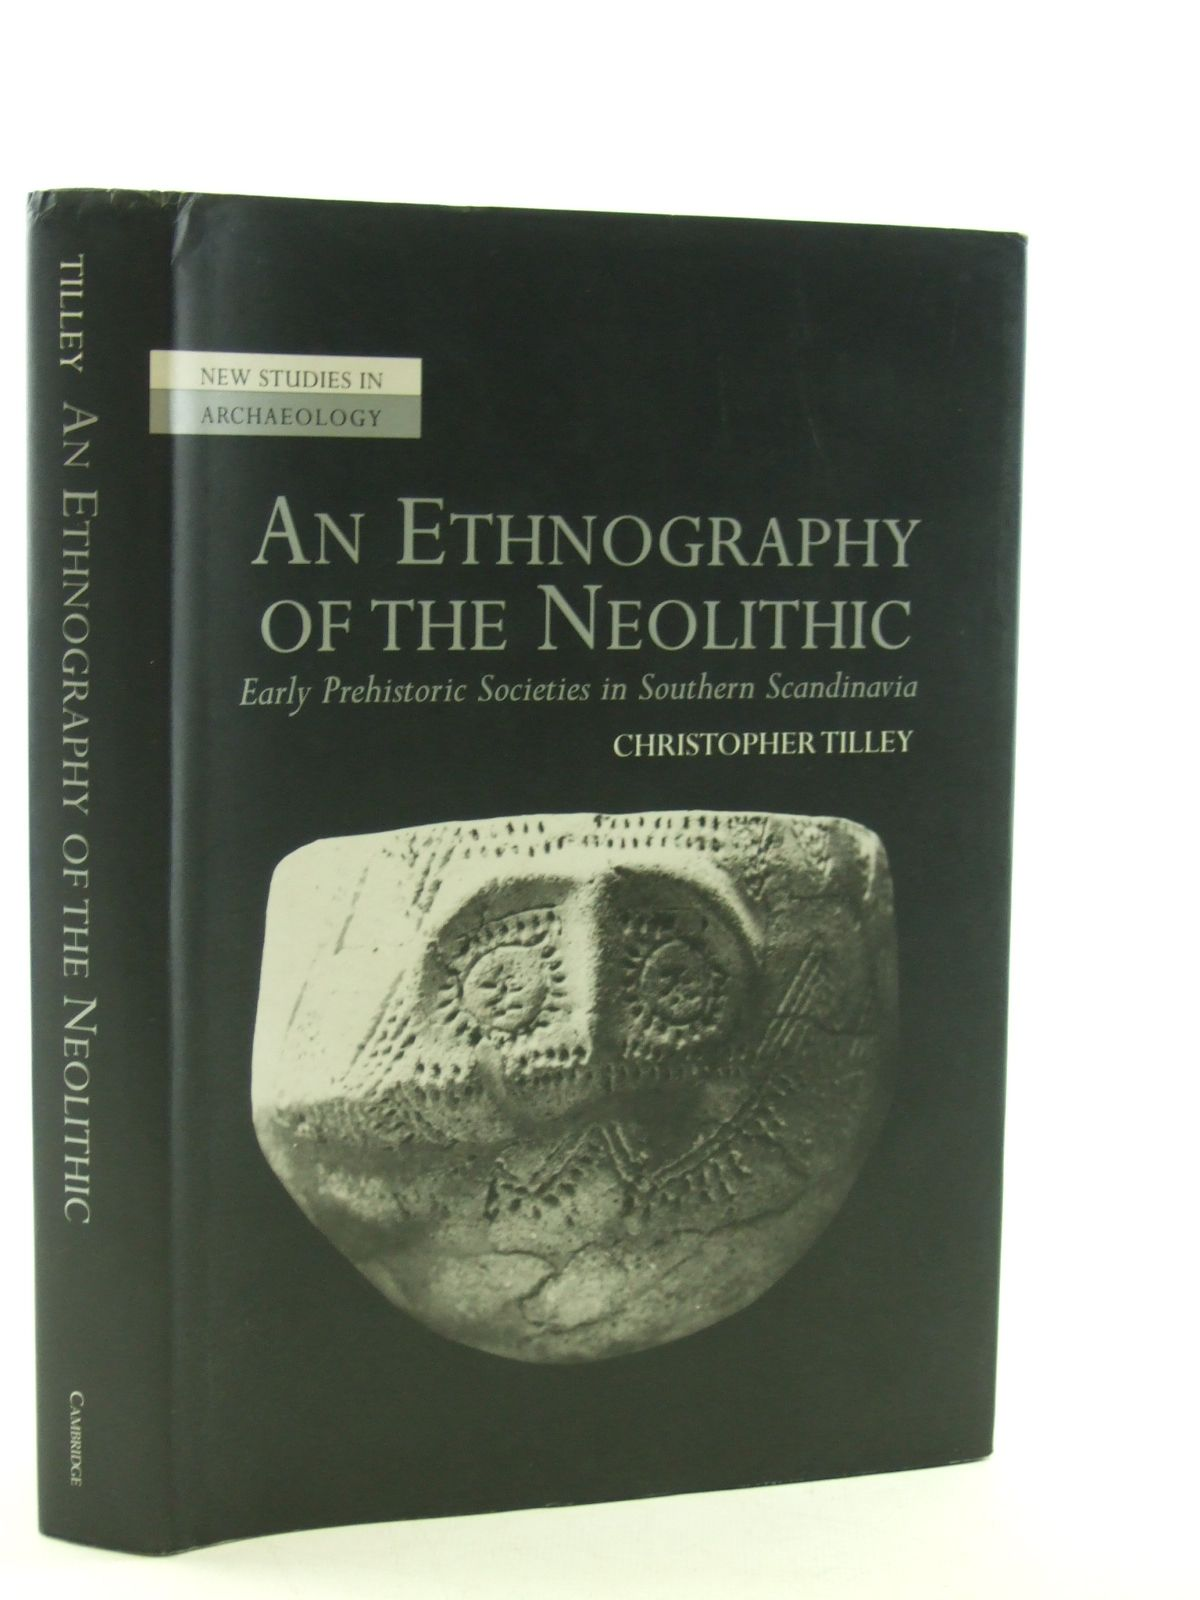 Photo of AN ETHNOGRAPHY OF THE NEOLITHIC written by Tilley, Christopher published by Cambridge University Press (STOCK CODE: 1207208)  for sale by Stella & Rose's Books